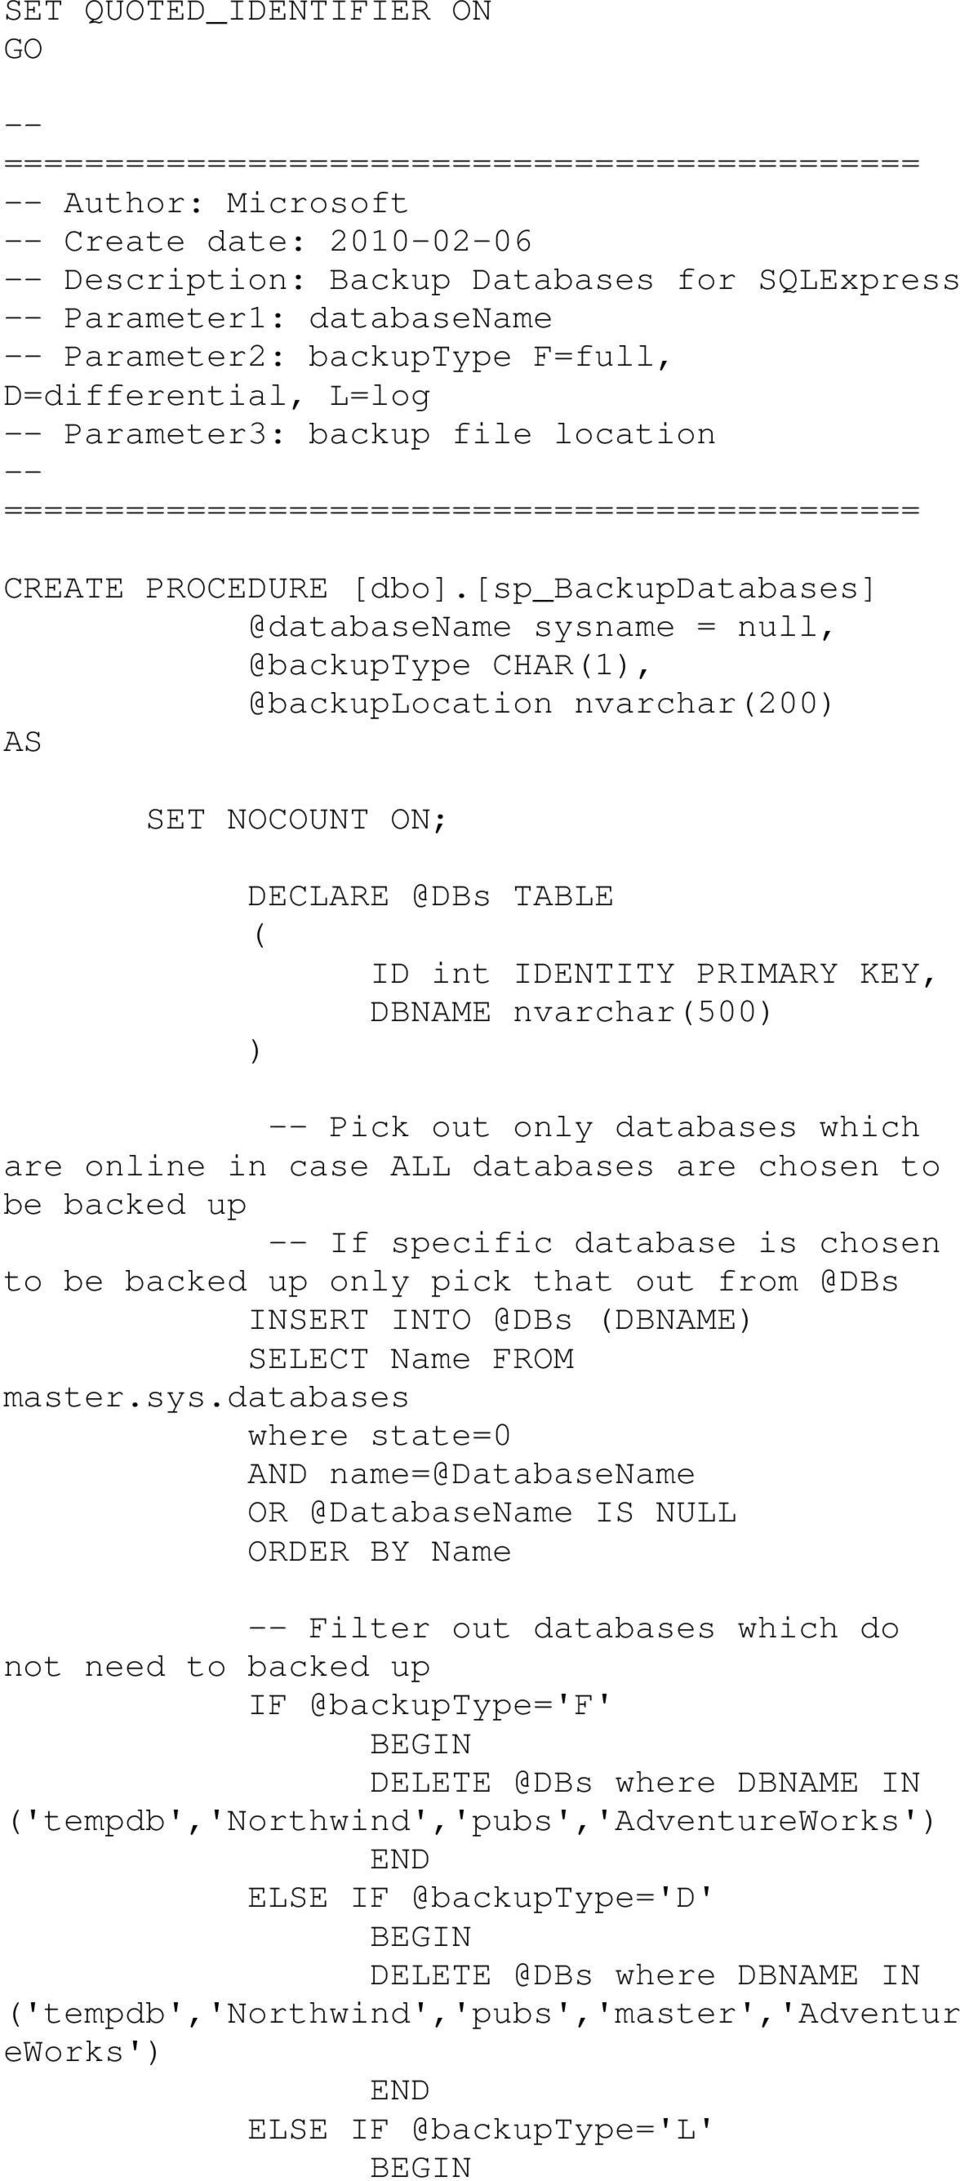 [sp_backupdatabases] @databasename sysname = null, @backuptype CHAR(1), @backuplocation nvarchar(200) AS SET NOCOUNT ON; DECLARE @DBs TABLE ( ID int IDENTITY PRIMARY KEY, DBNAME nvarchar(500) ) --